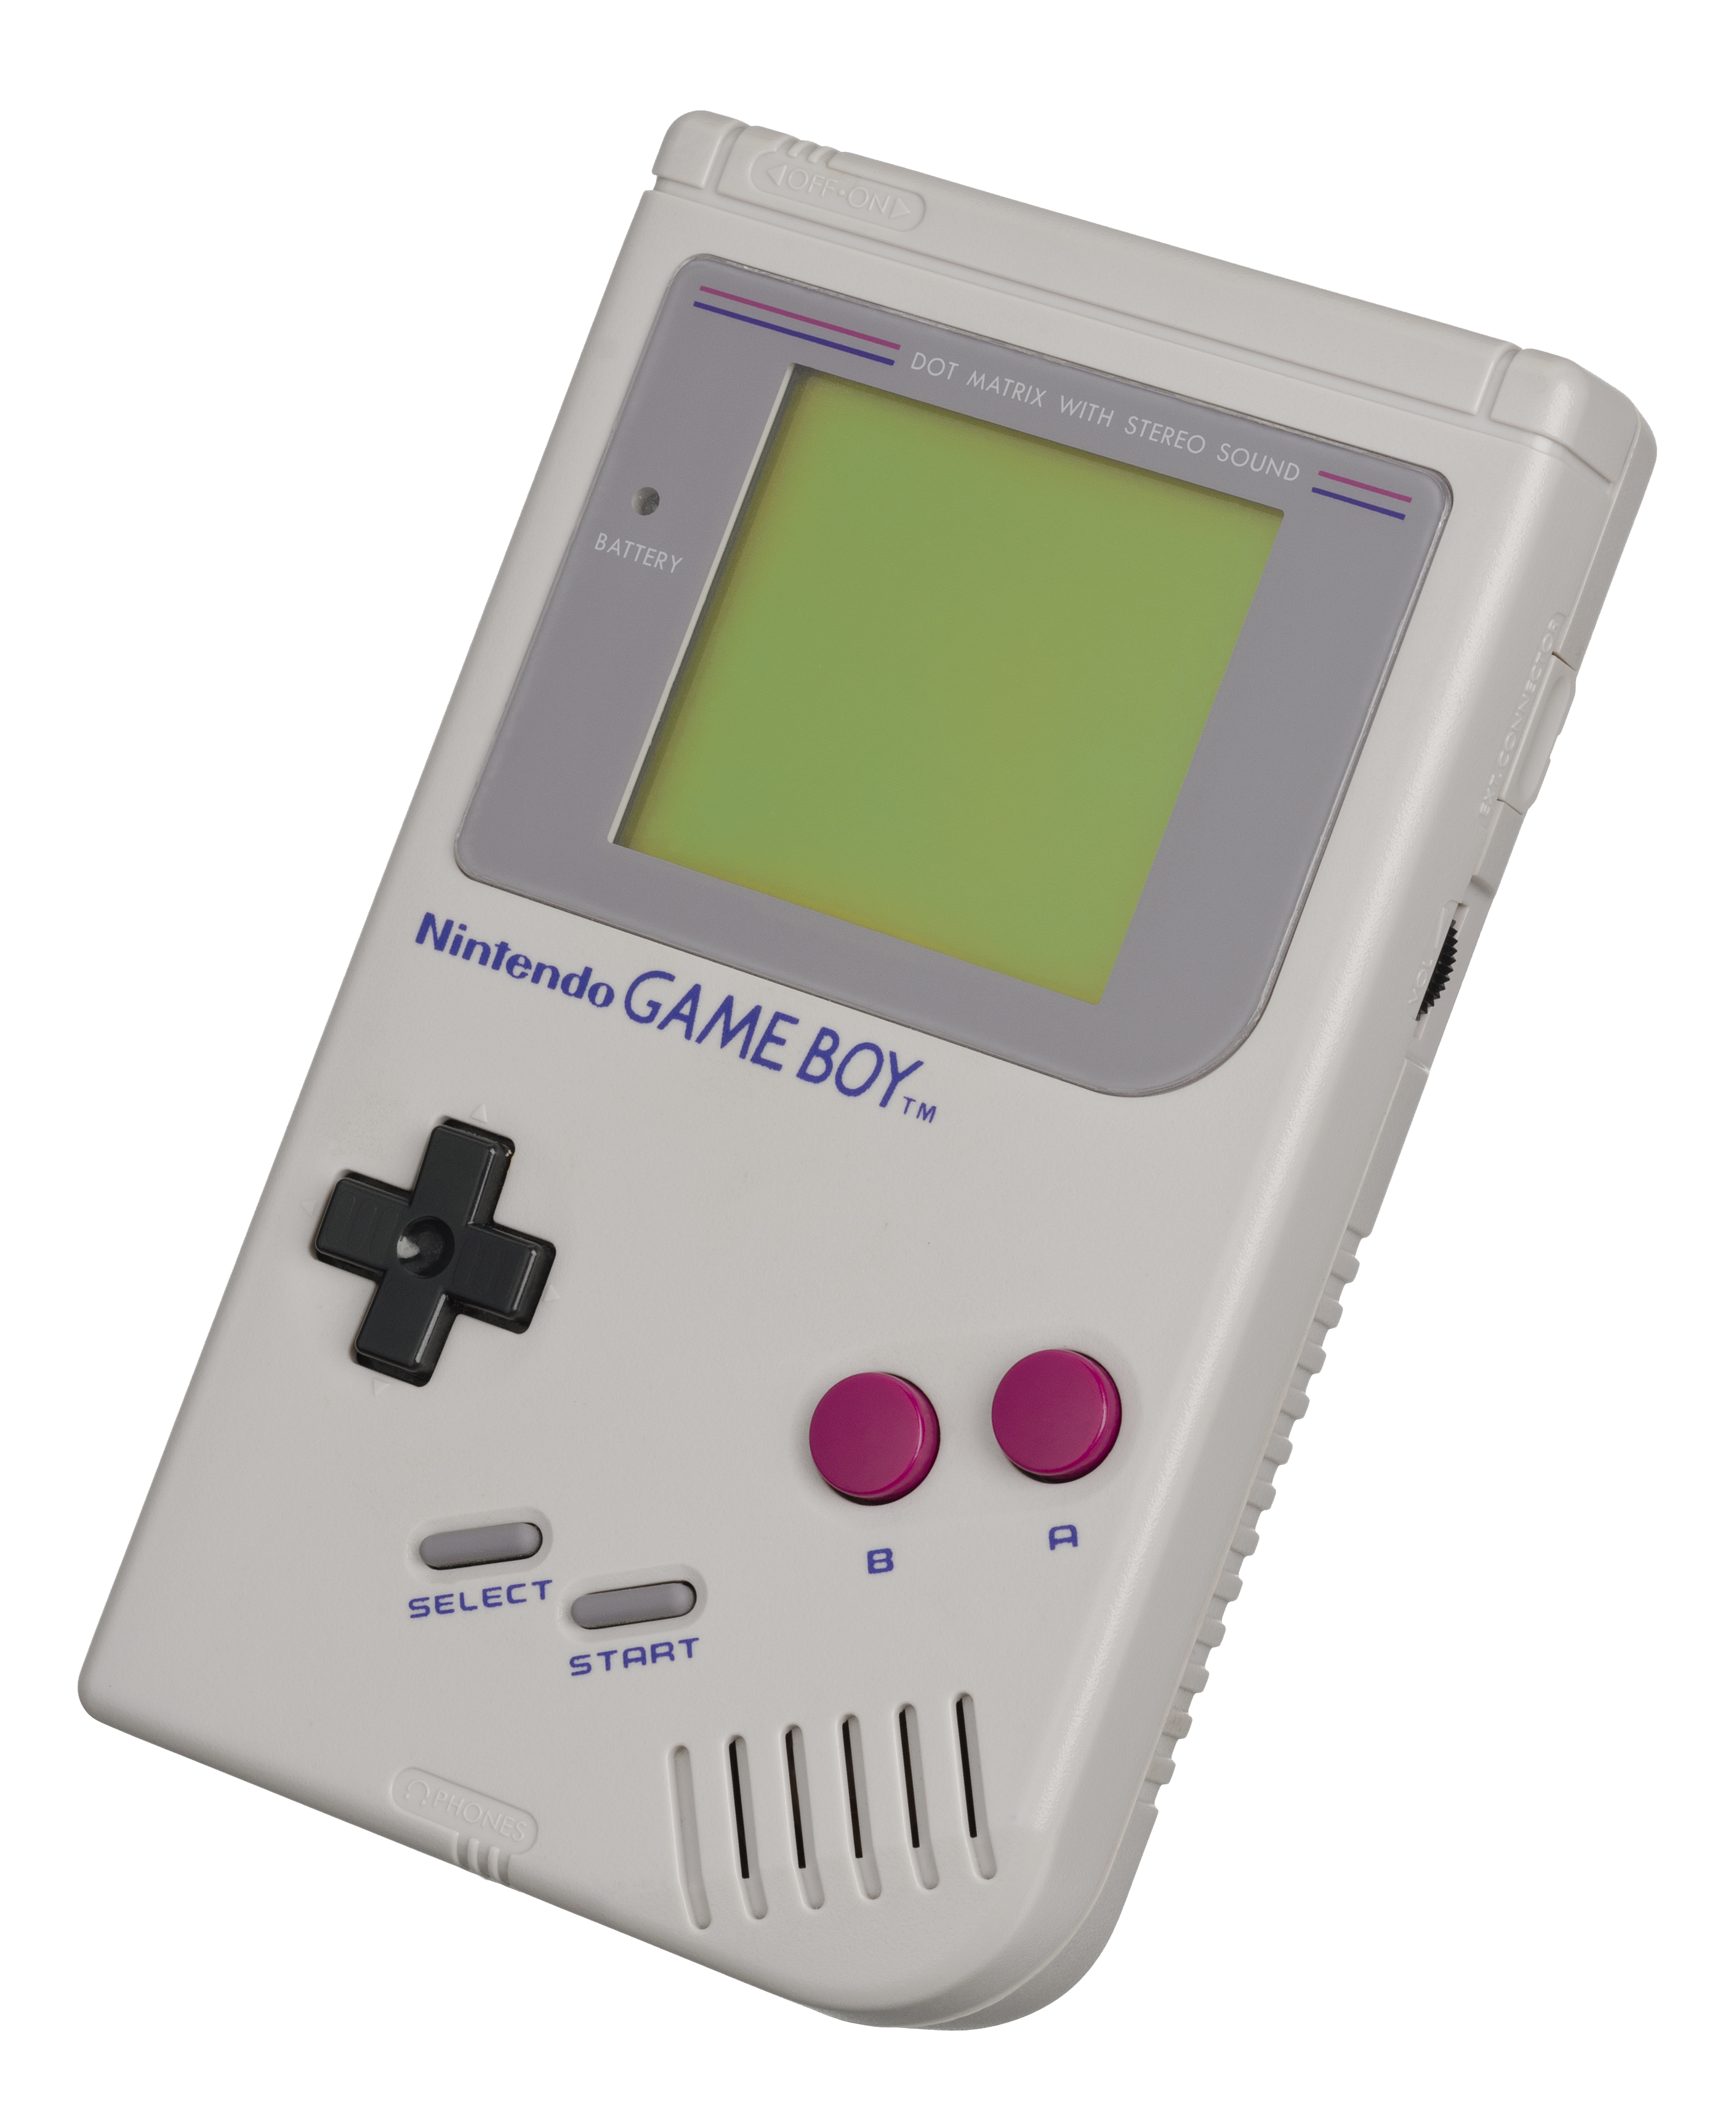 Want to Play Game Boy Games on the Apple Watch?